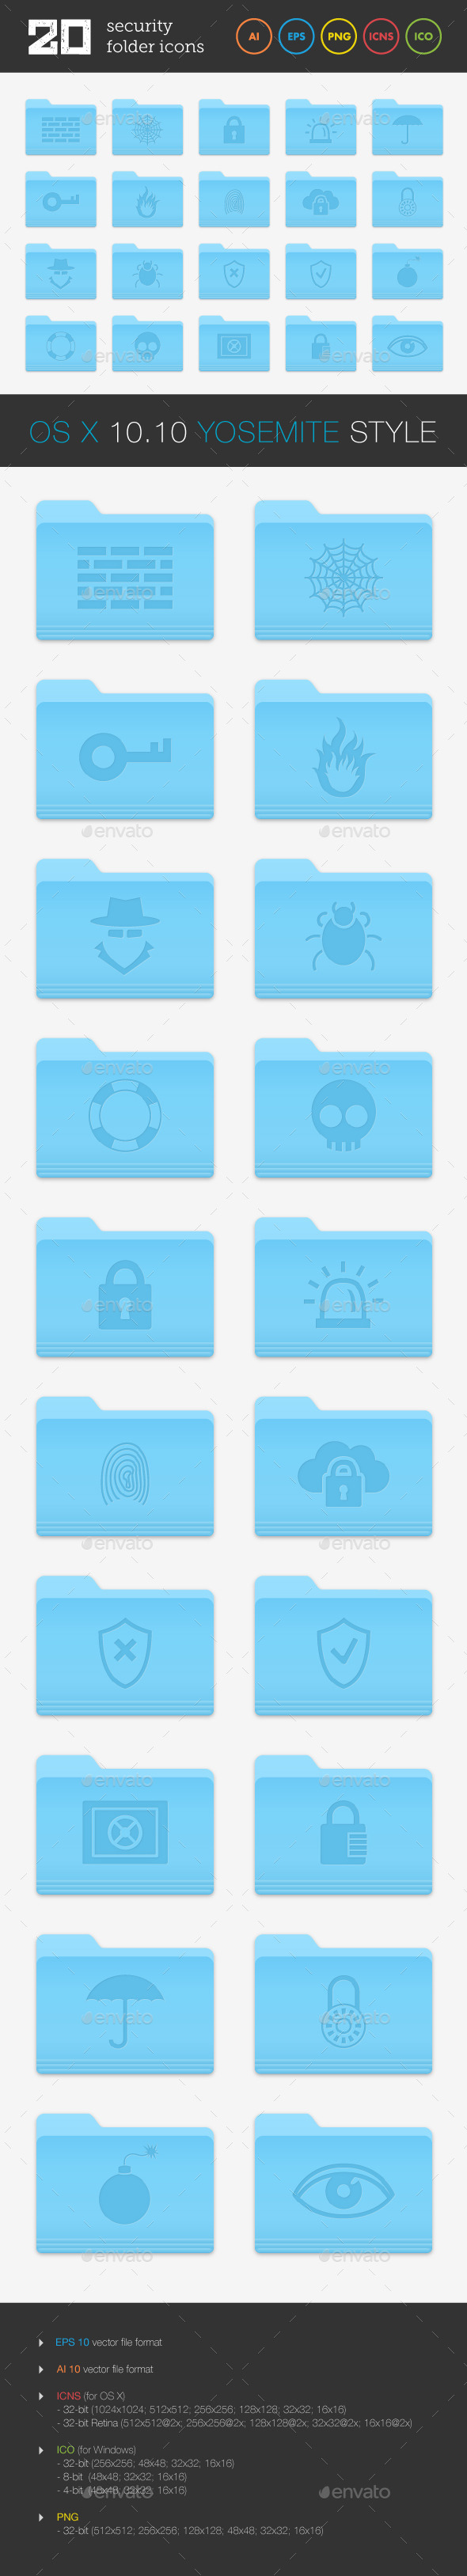 GraphicRiver Security Folder Icons Set 9162257